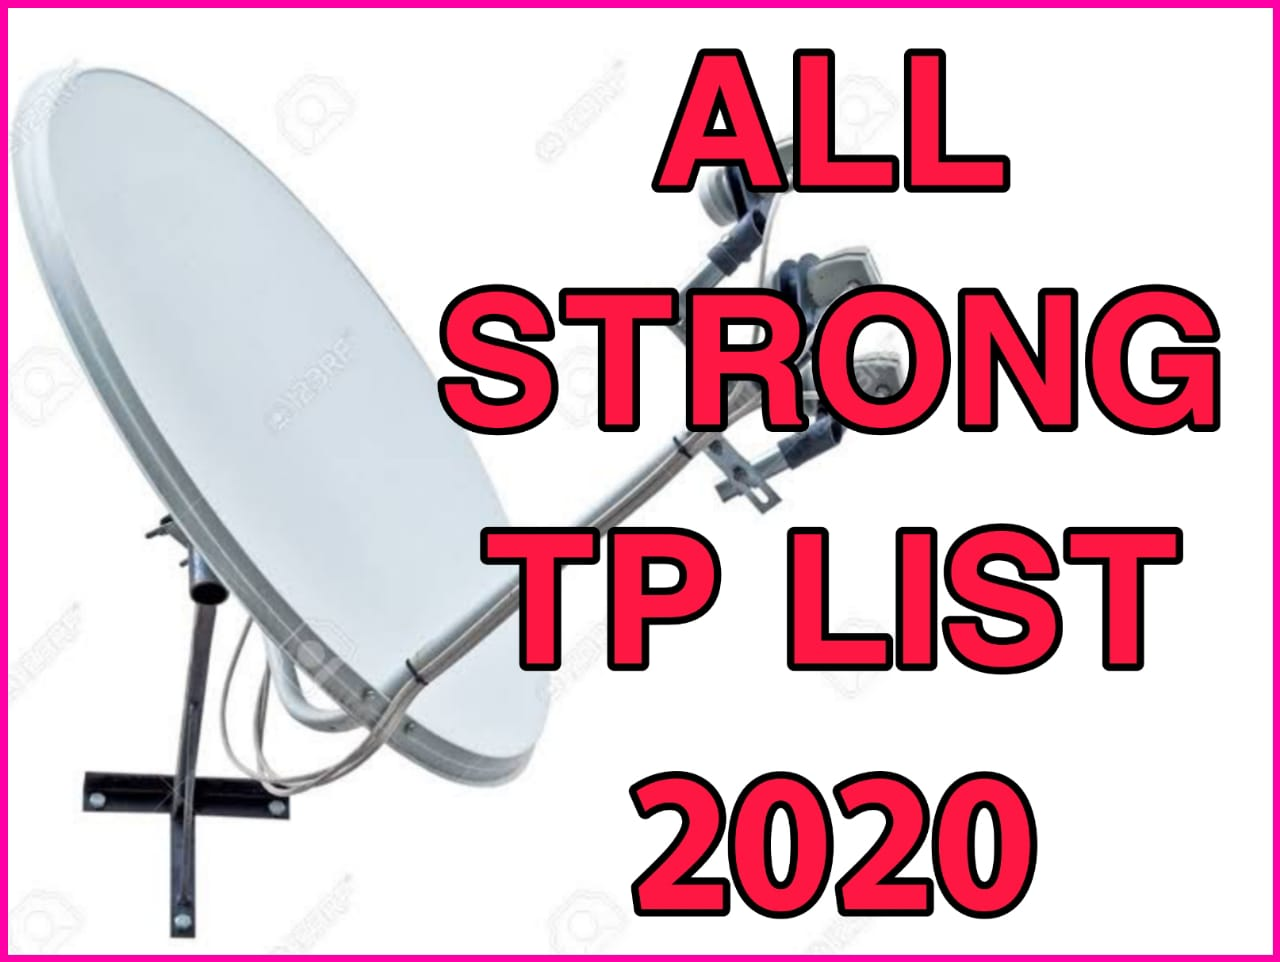 All Satellites Strong TP List 2020  All KU Band C band Satellite Strong TP List frequency Latest Updated 2020